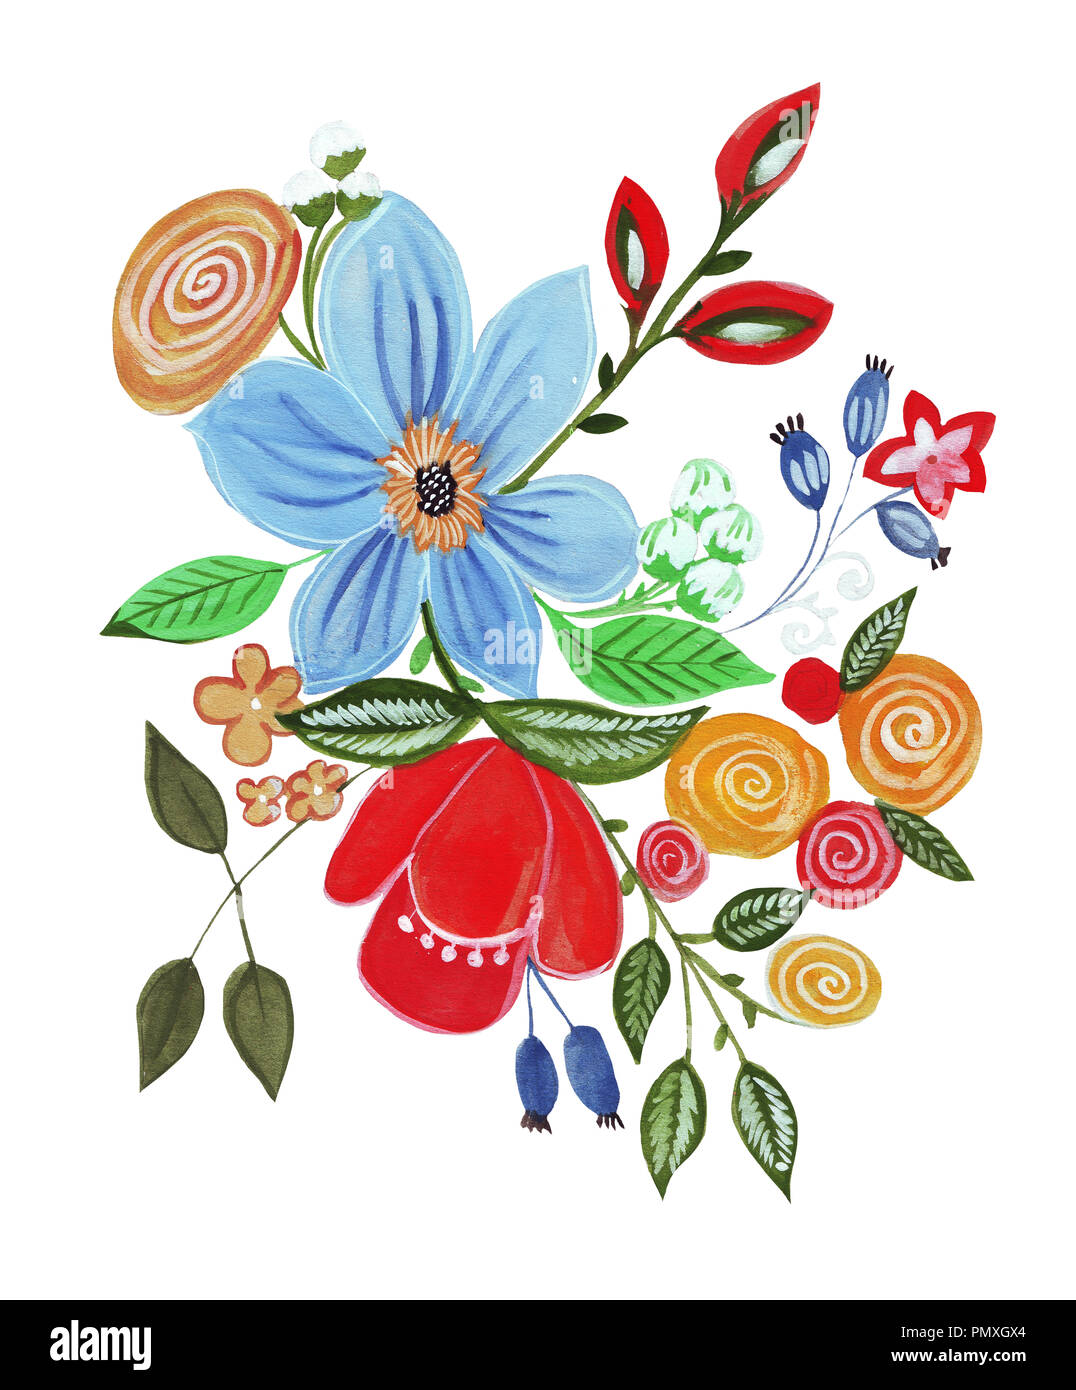 Illustration of pencil drawing bouquet flowers in bright colors for illustration of pencil drawing bouquet flowers in bright colors for various types of isolated izmirmasajfo